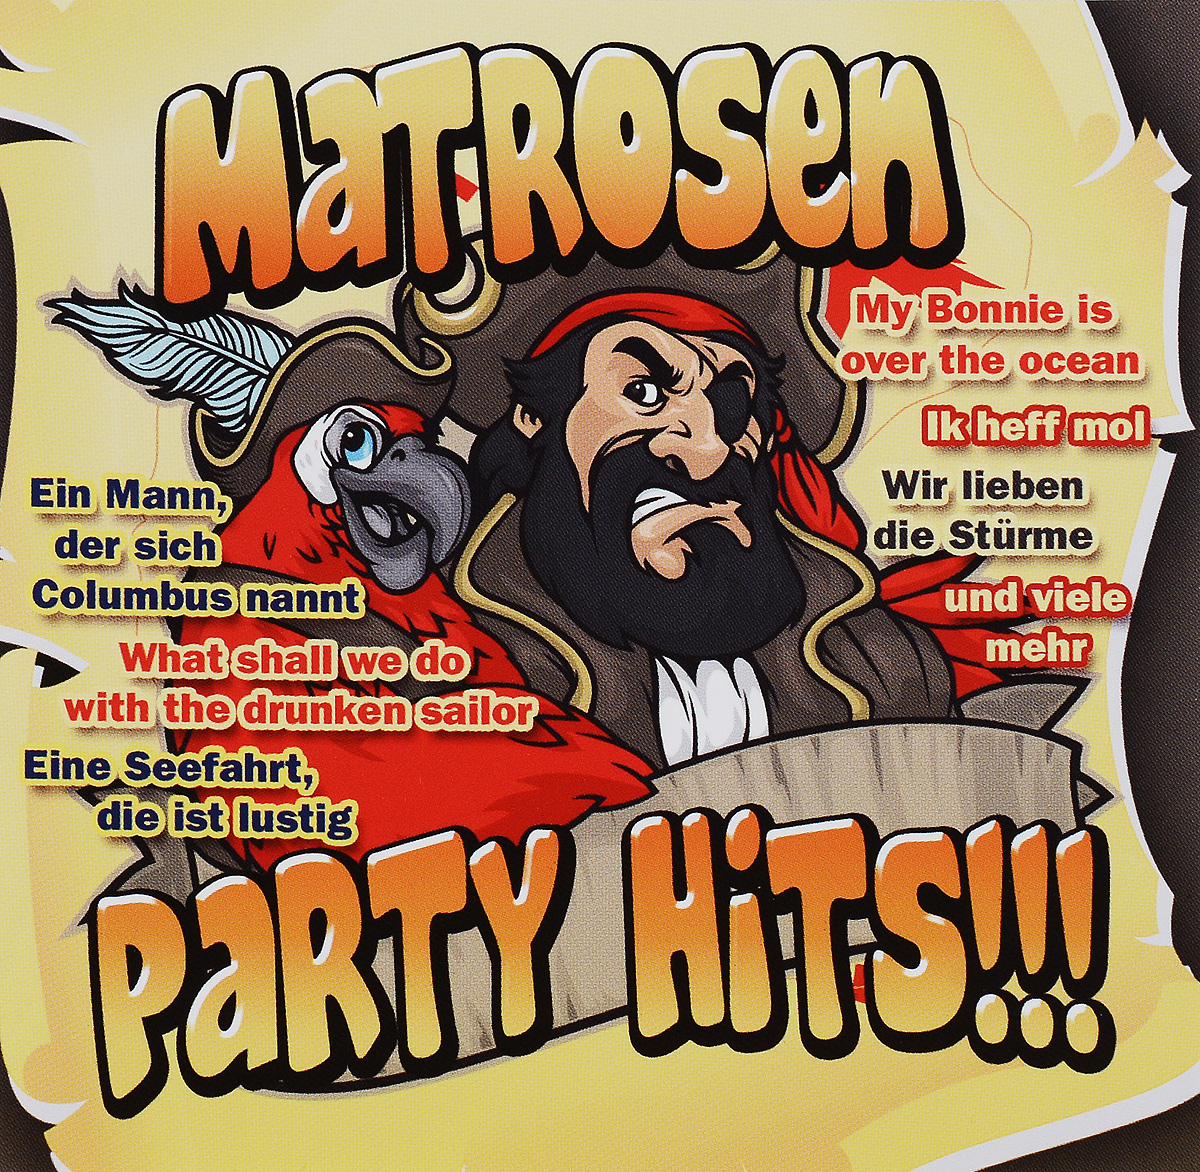 Matrosen Party Hits!!!